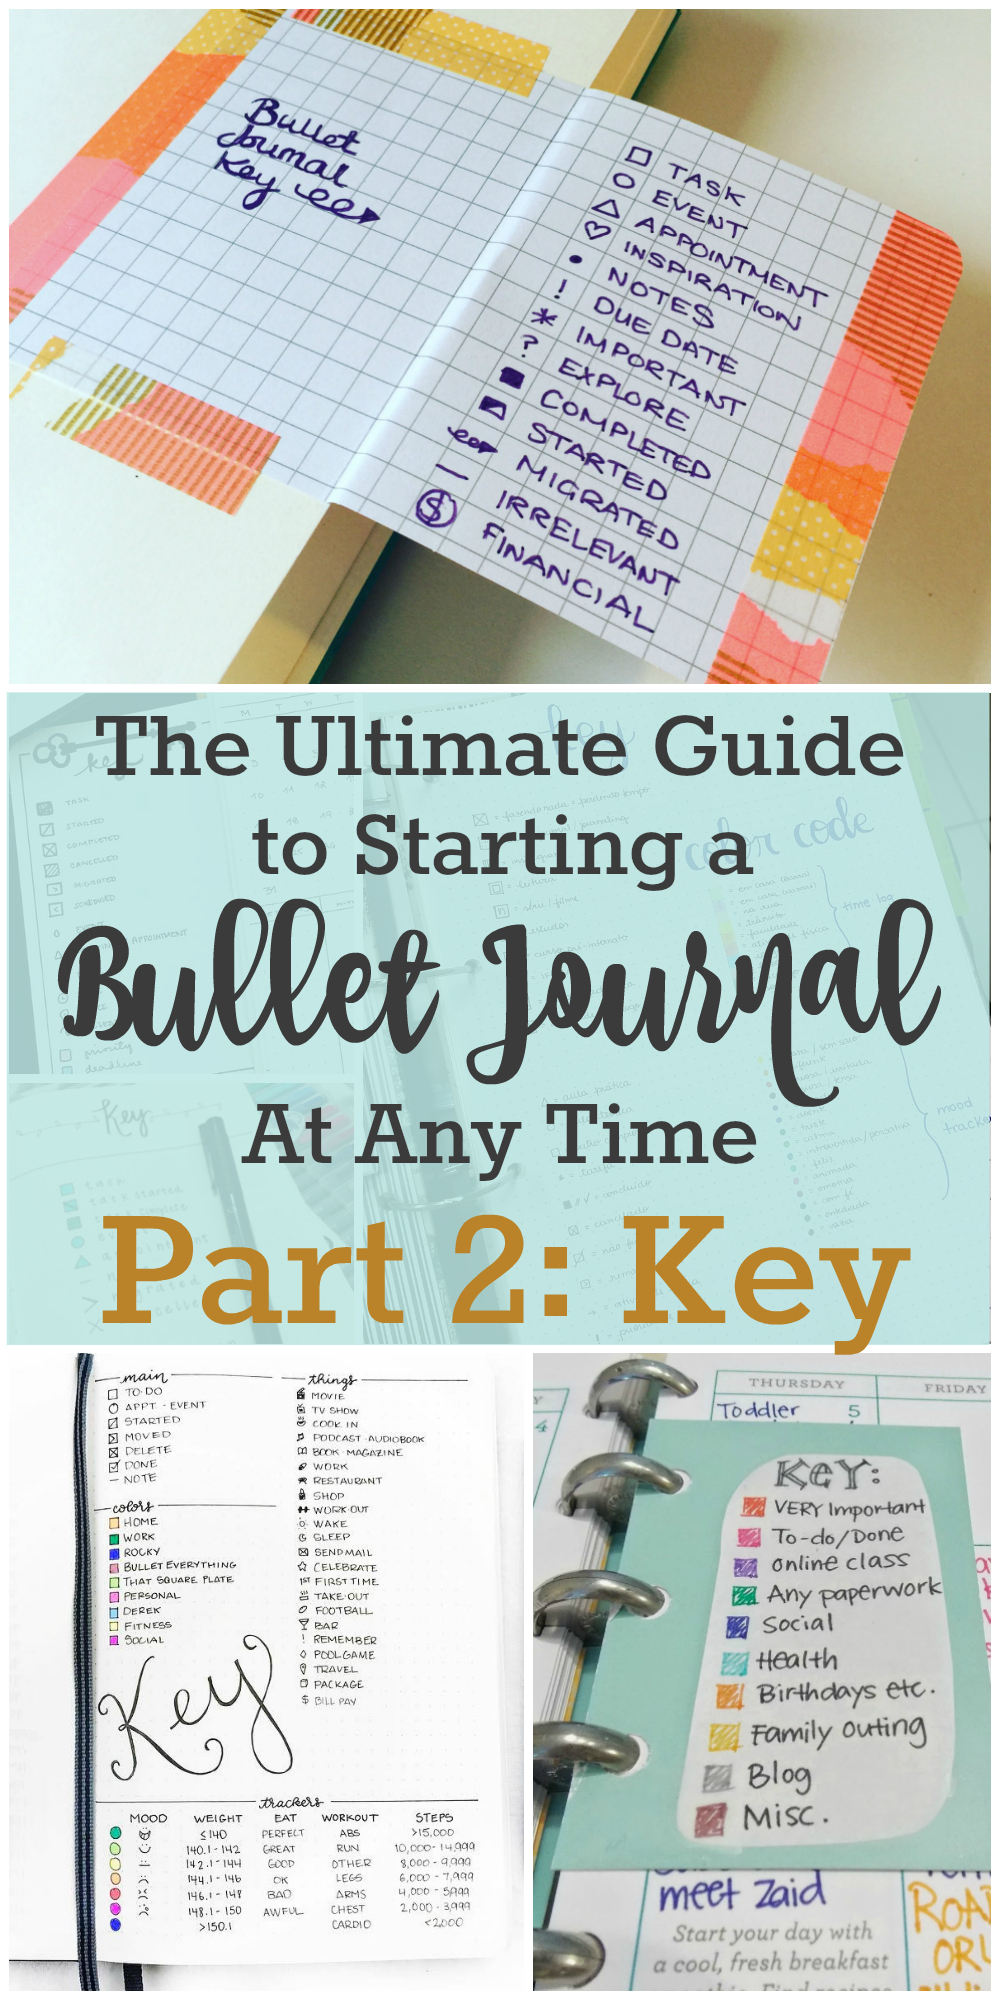 photograph regarding Bullet Journal Key Printable known as The Best Bullet Magazine Solution - Zen of Developing